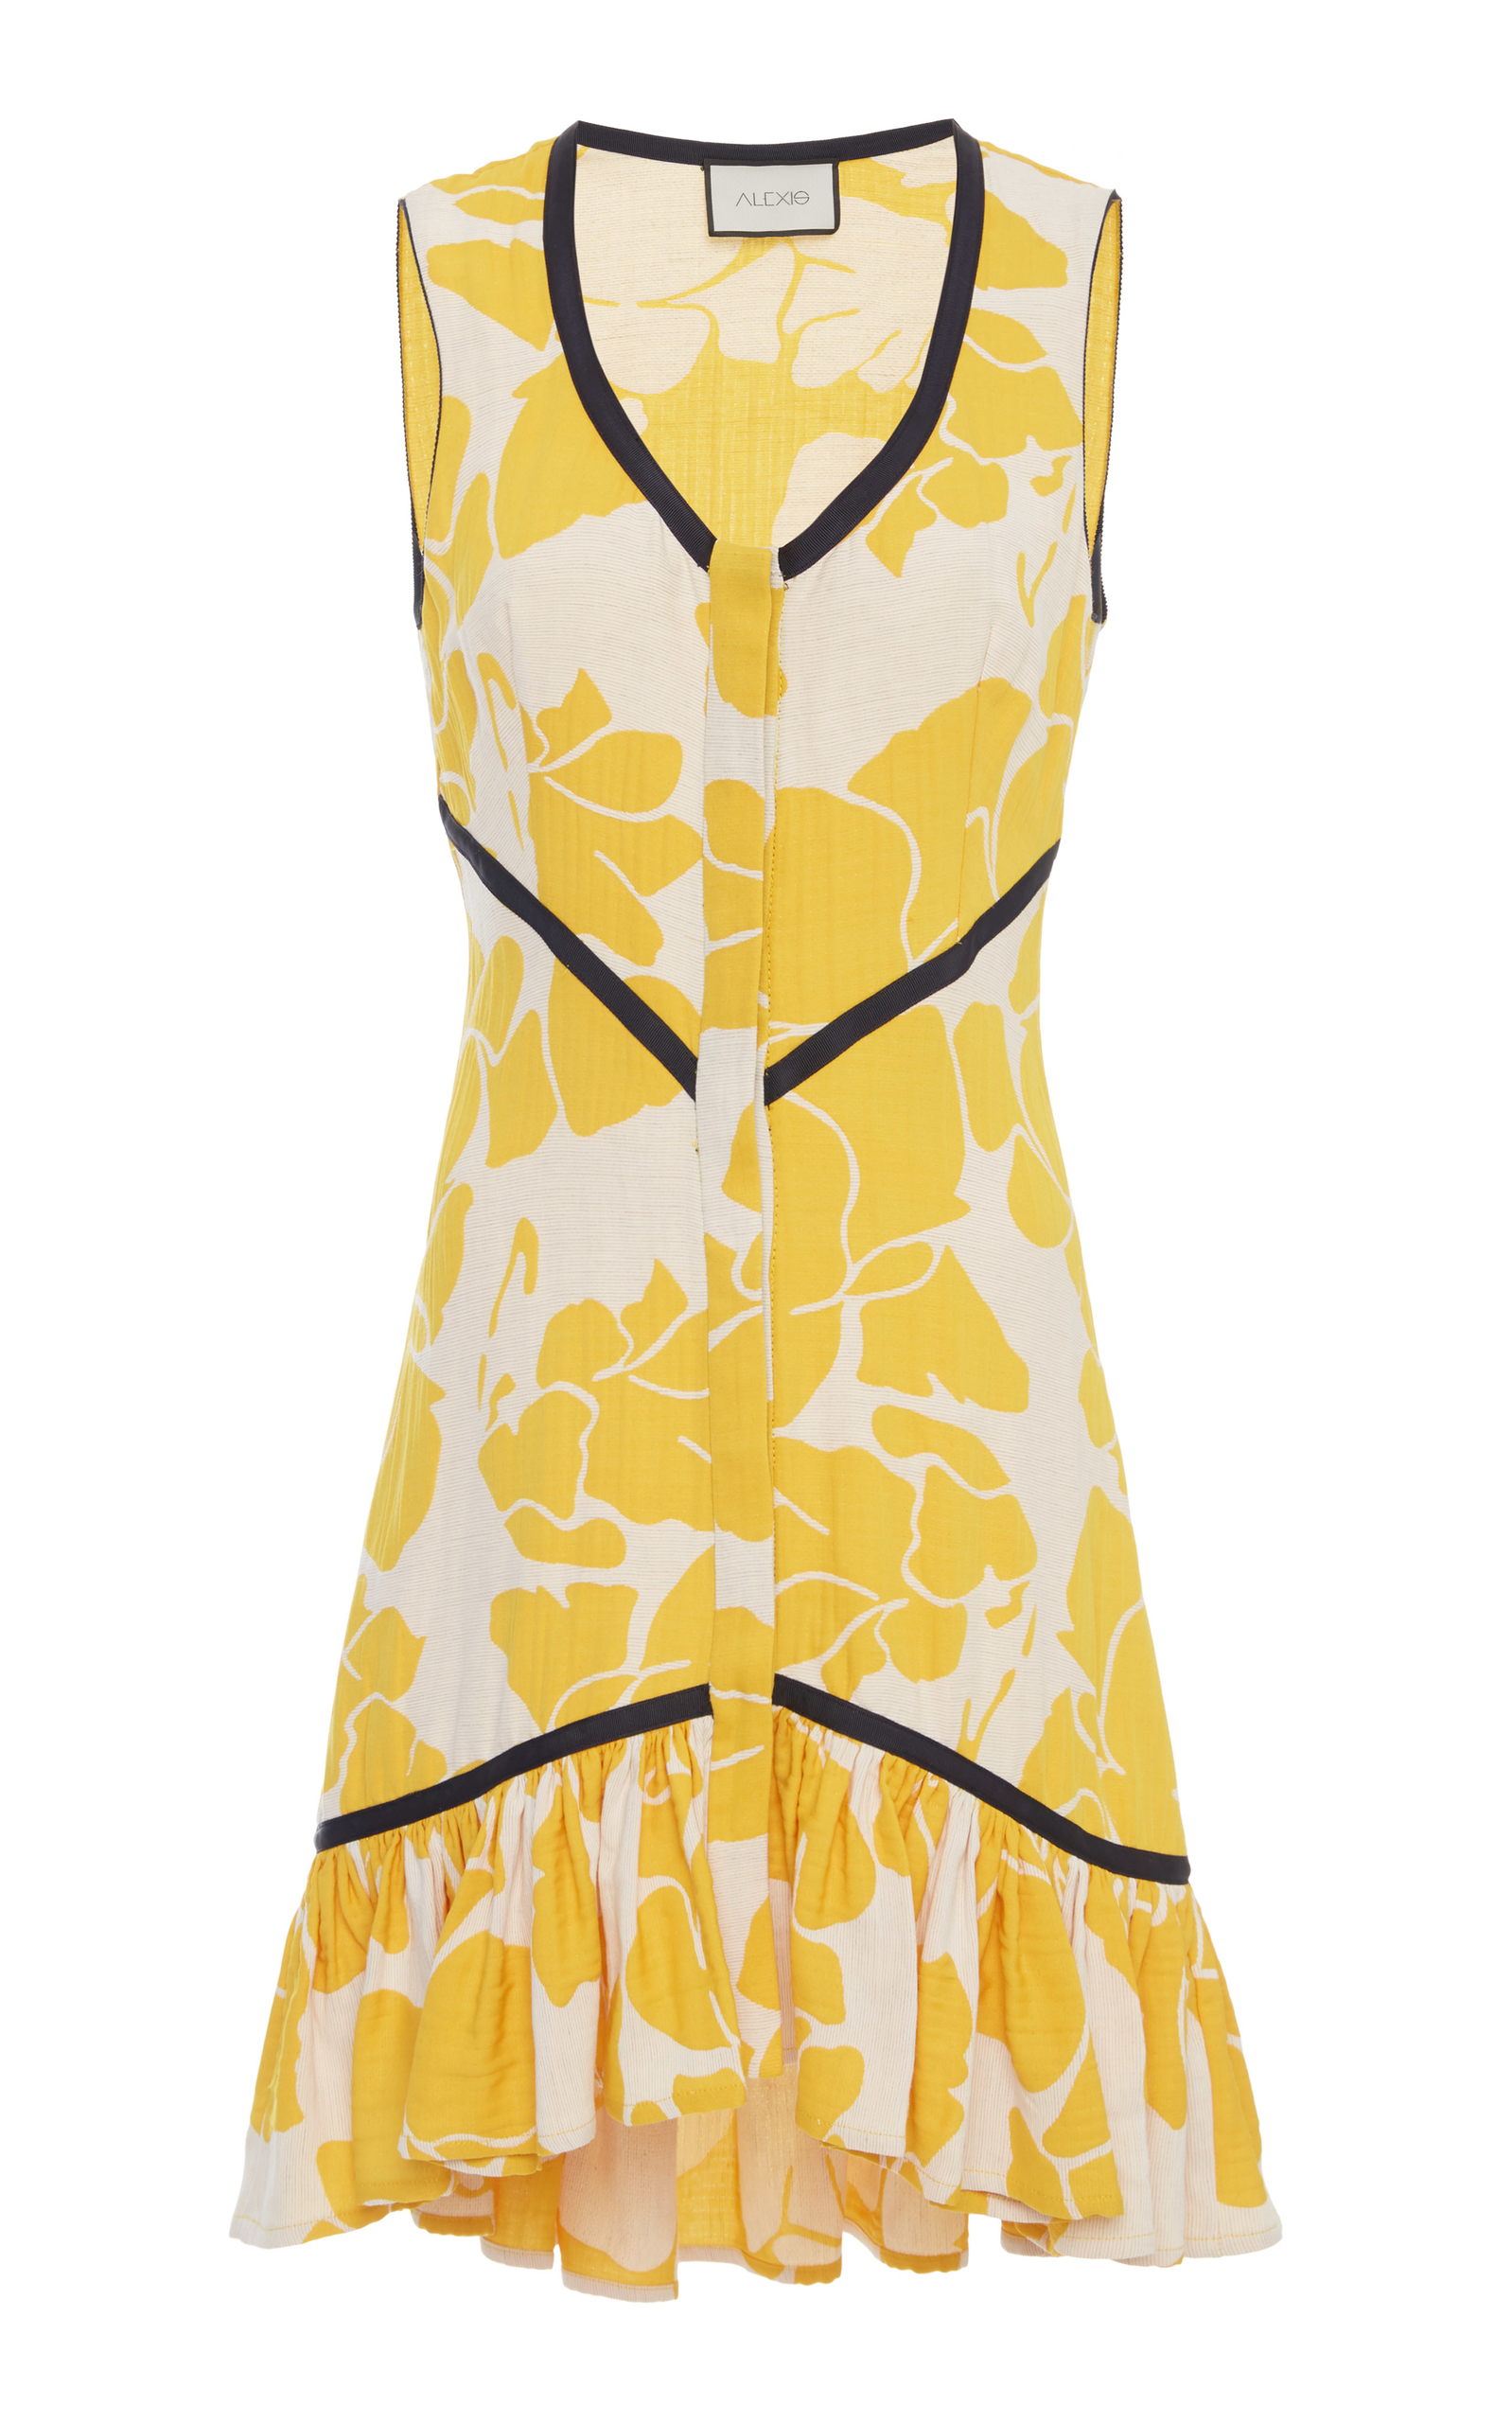 Simonet Floral Flounce High-Low Dress in Yellow